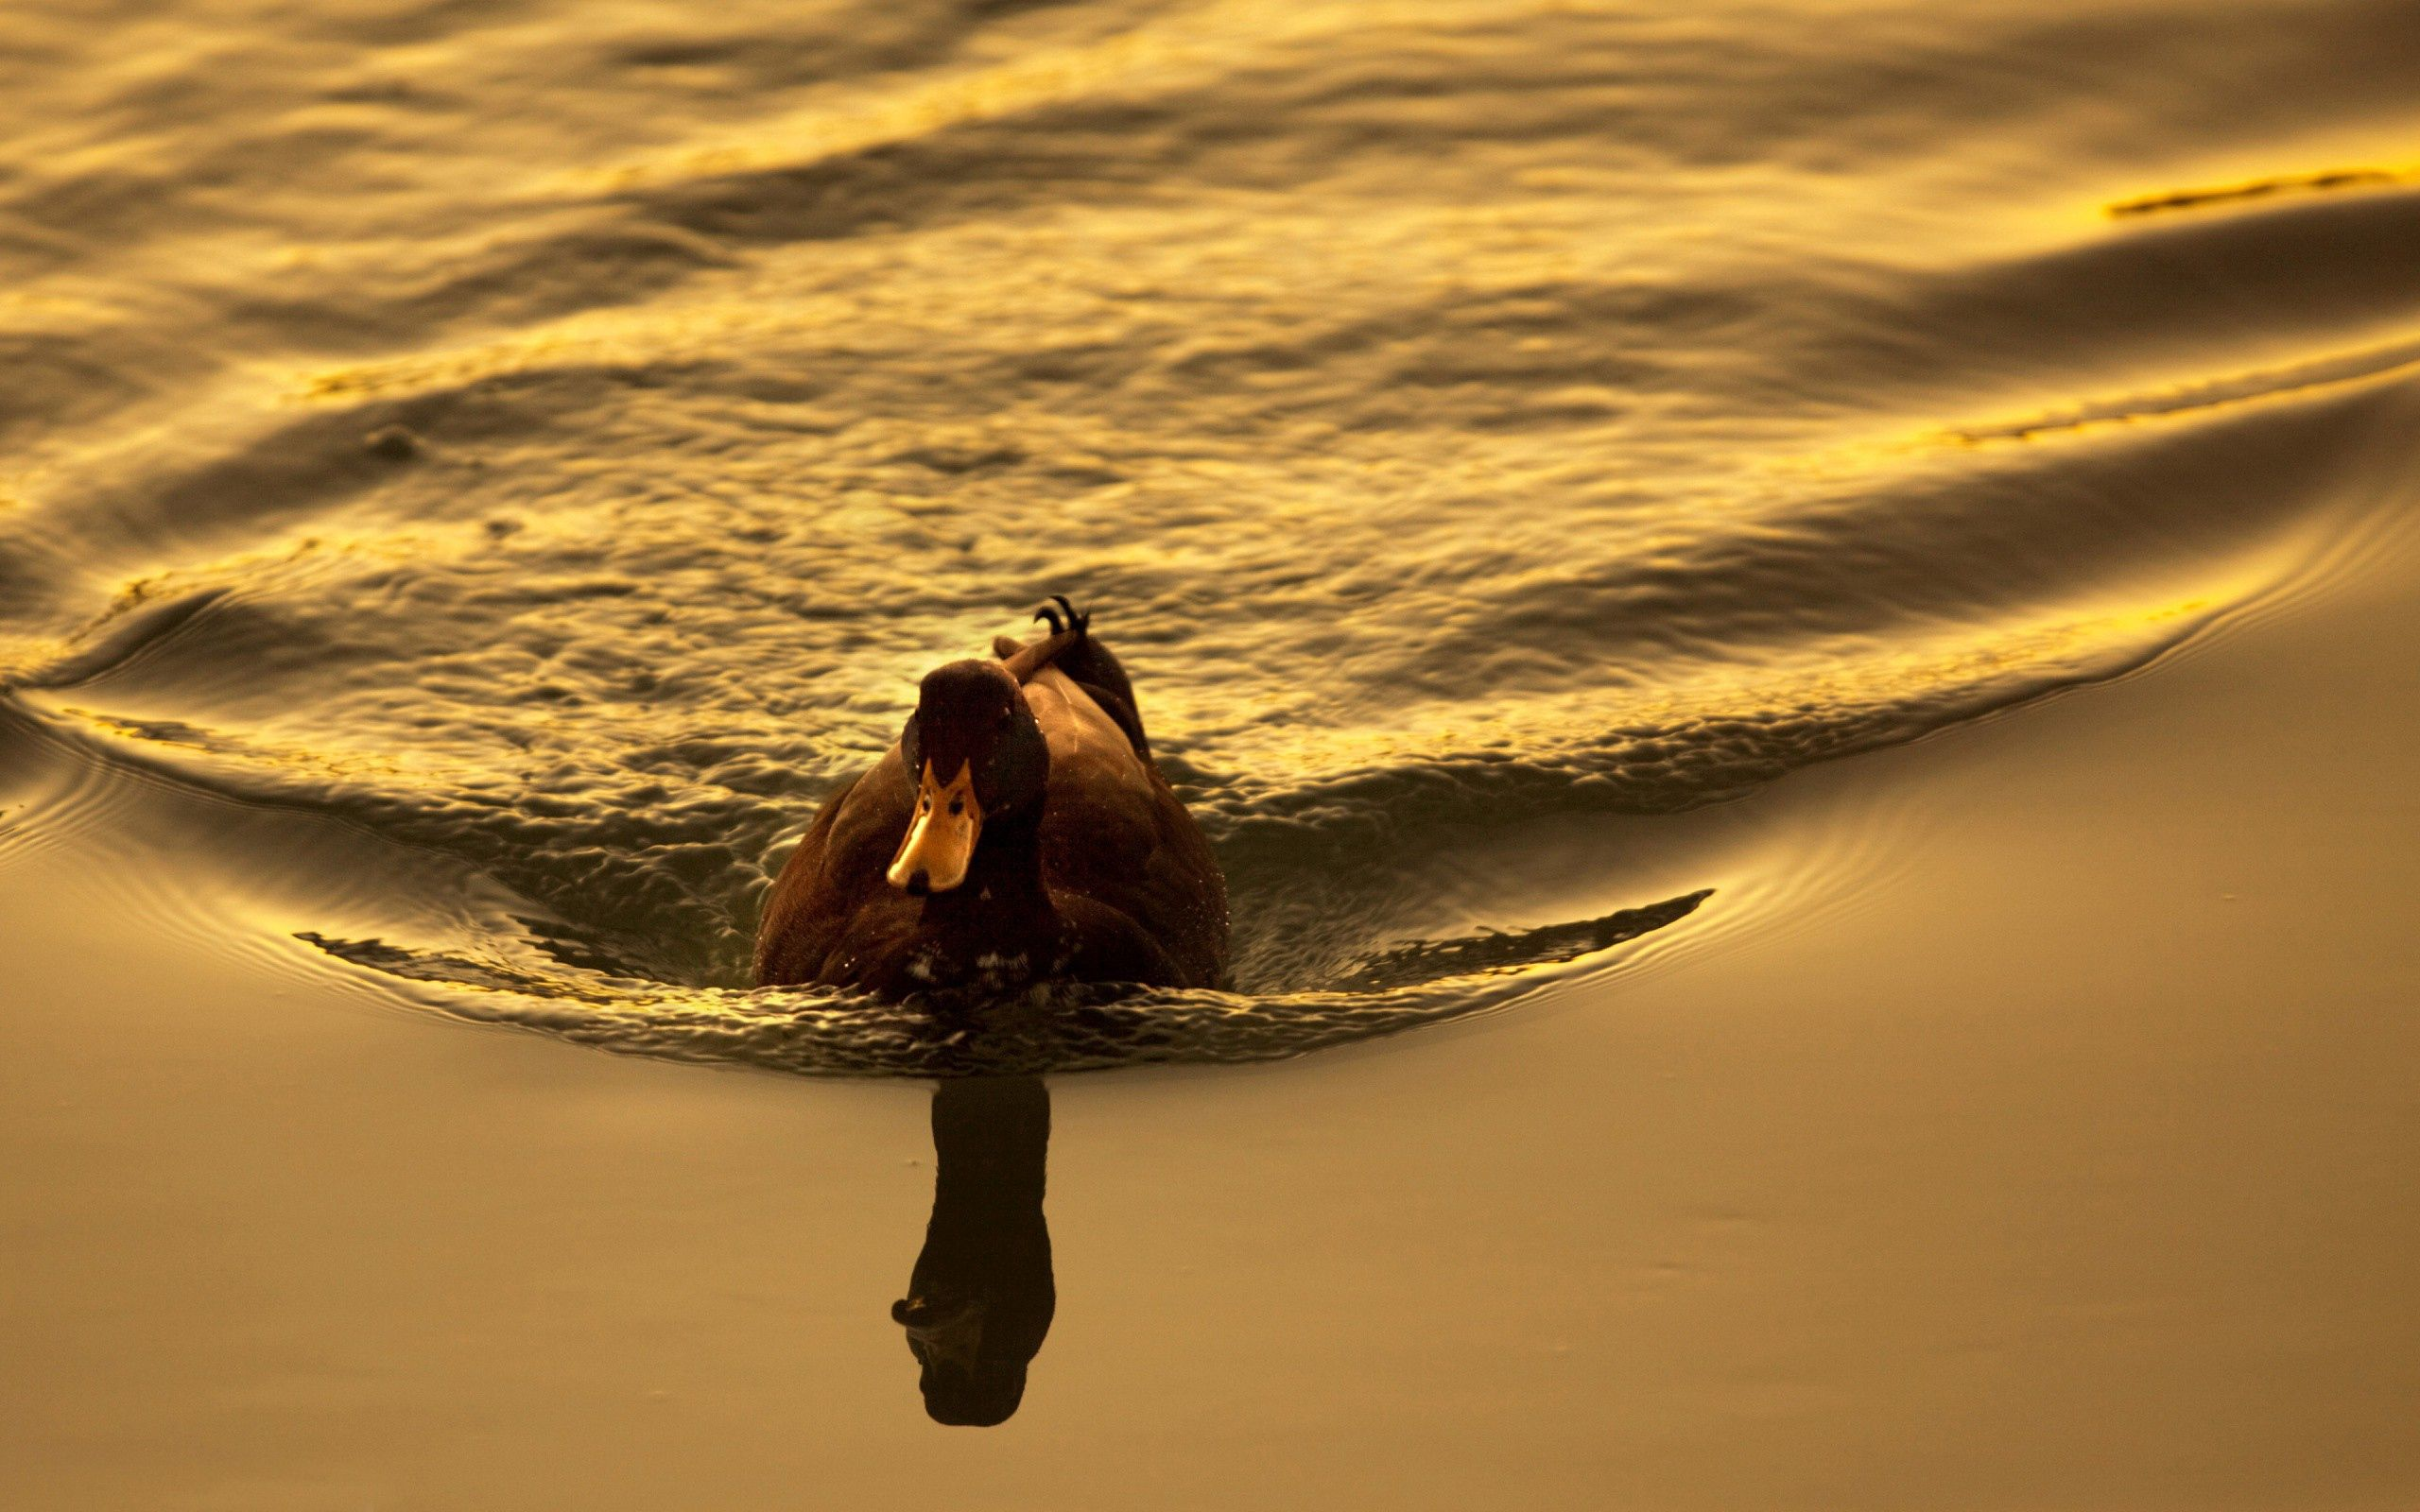 94046 download wallpaper Animals, Duck, Lake, To Swim, Swim, Sunset, Bird screensavers and pictures for free